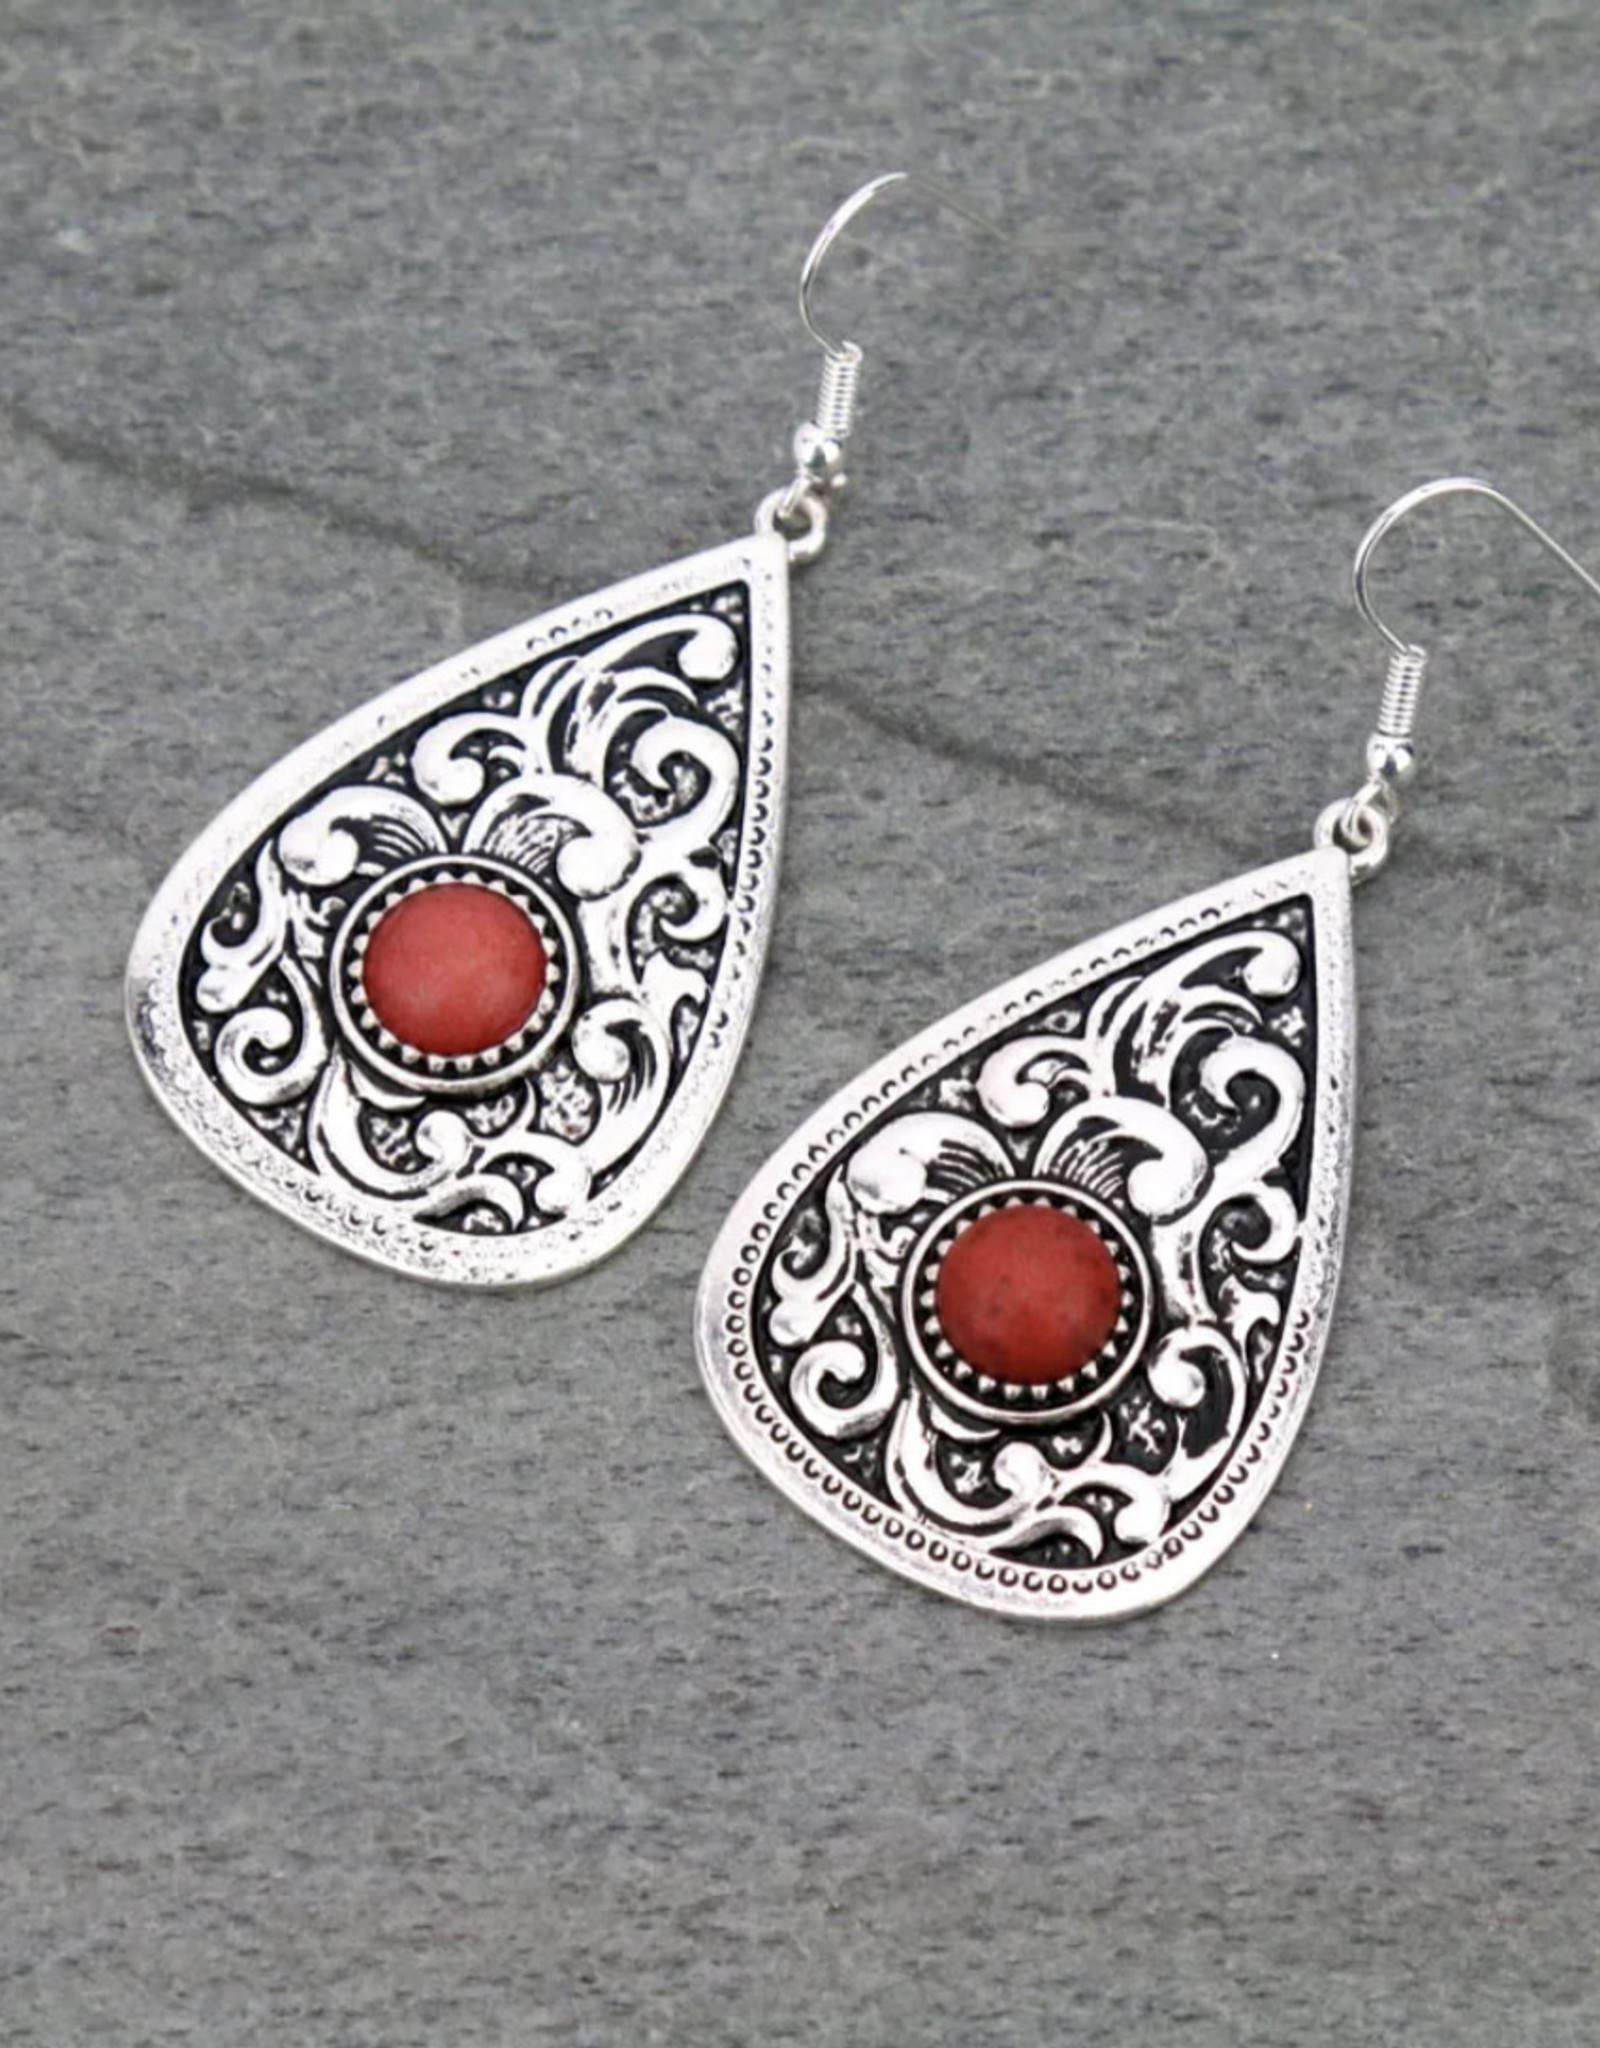 EARRINGS PATTERNED TEARDROP CASTING WITH RED STONE DANGLE